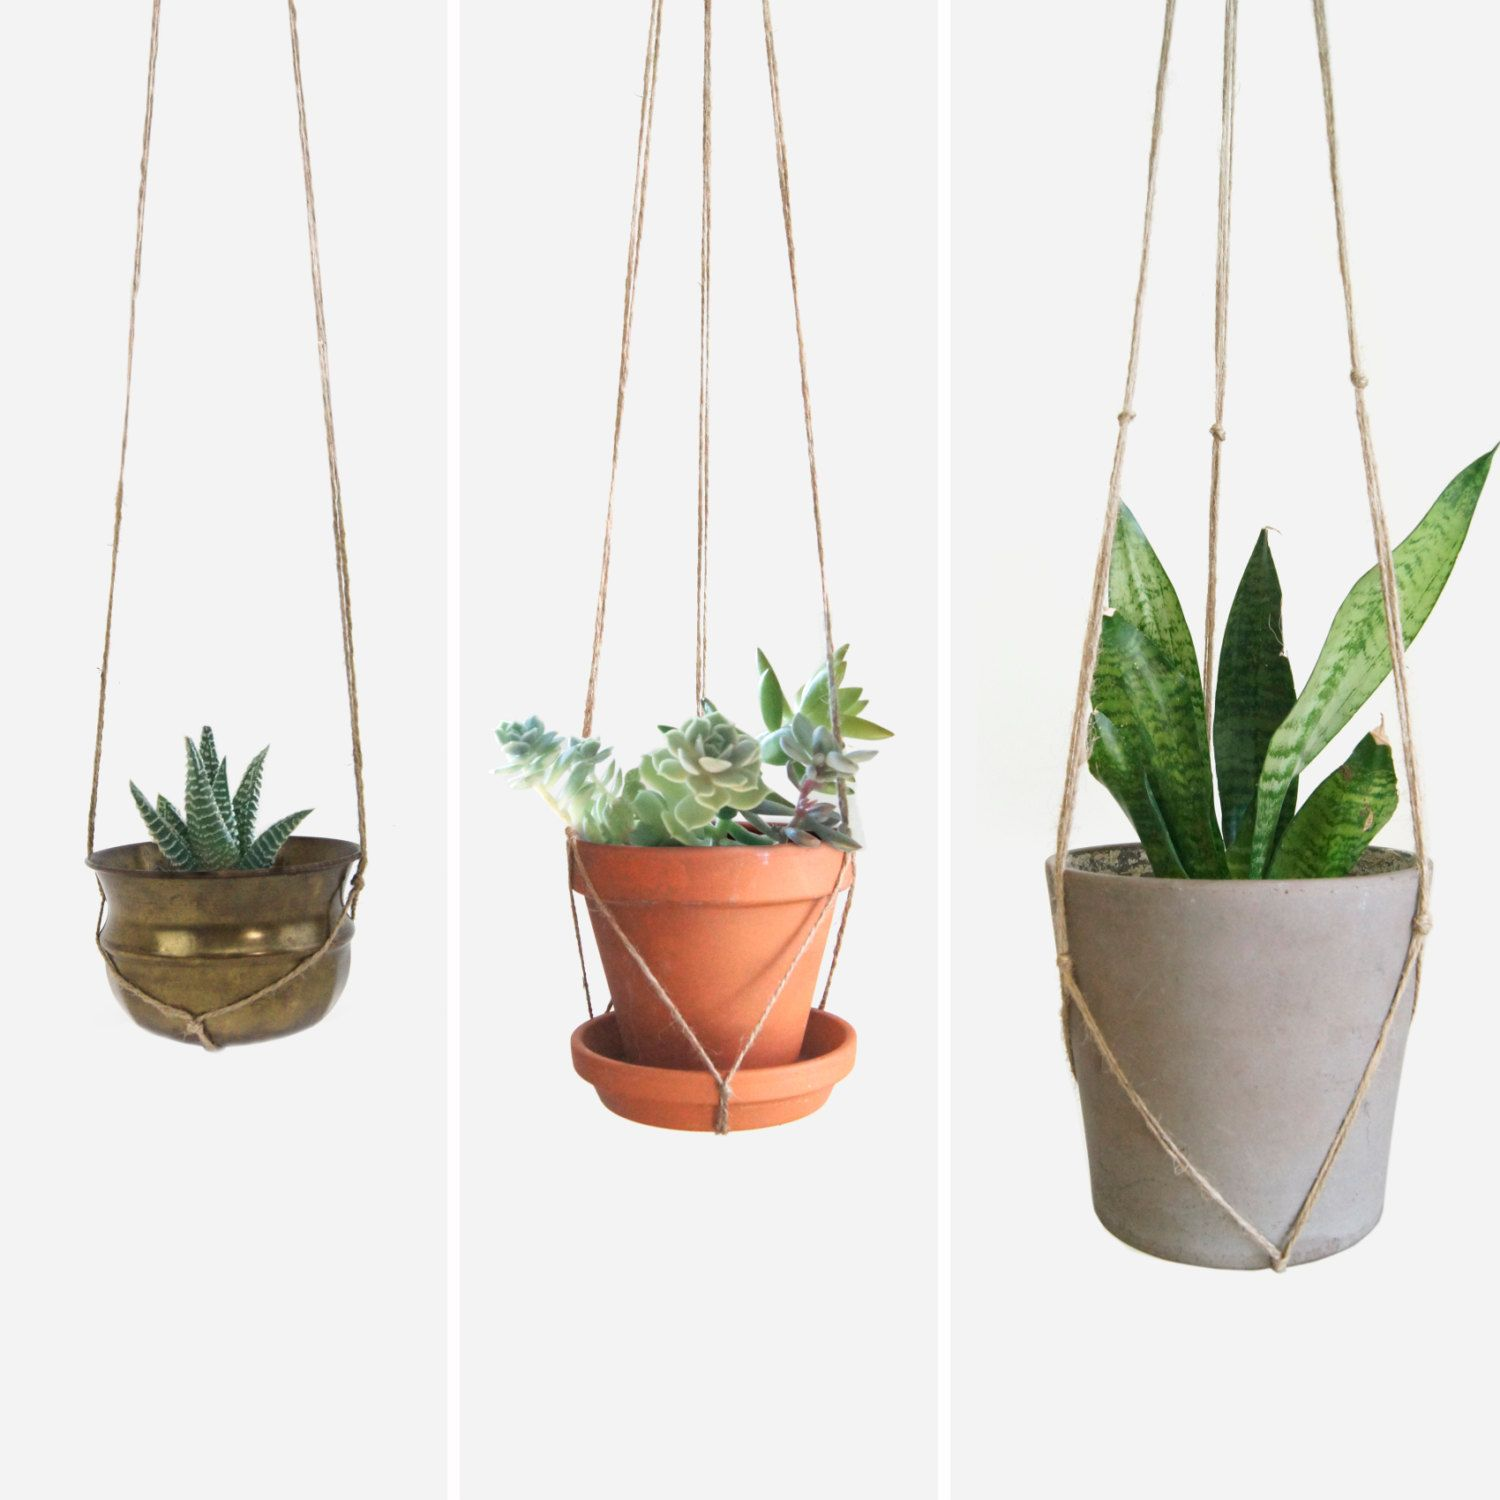 Natural Beige Macrame Plant Hanger For Hanging Planters Raw Jute